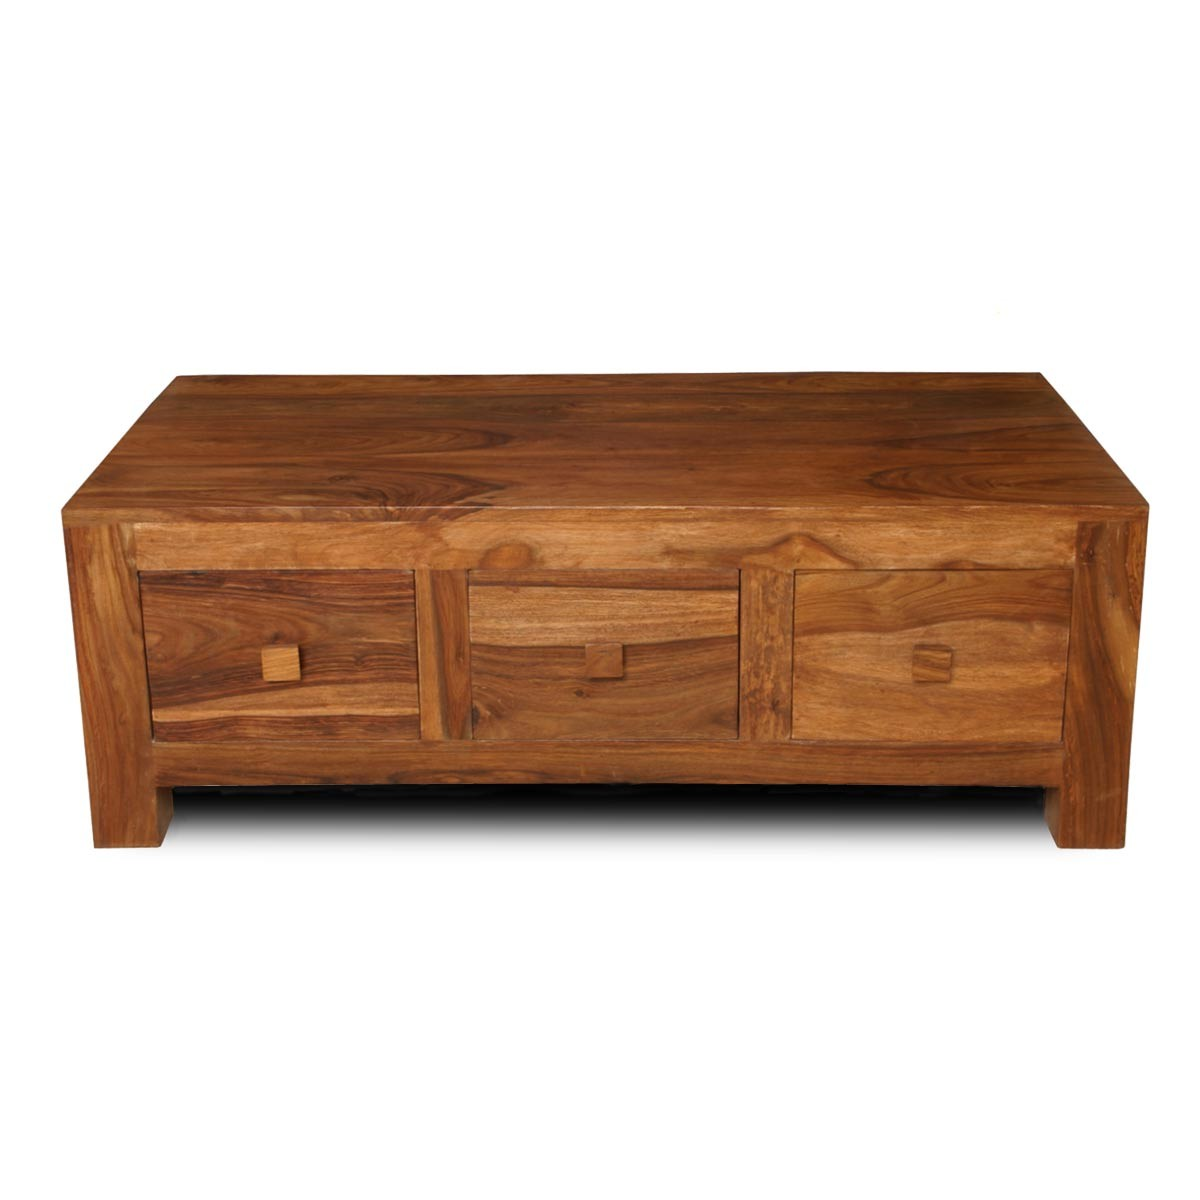 Cuba sheesham 3 drawer coffee table casa bella furniture uk for Furniture uk